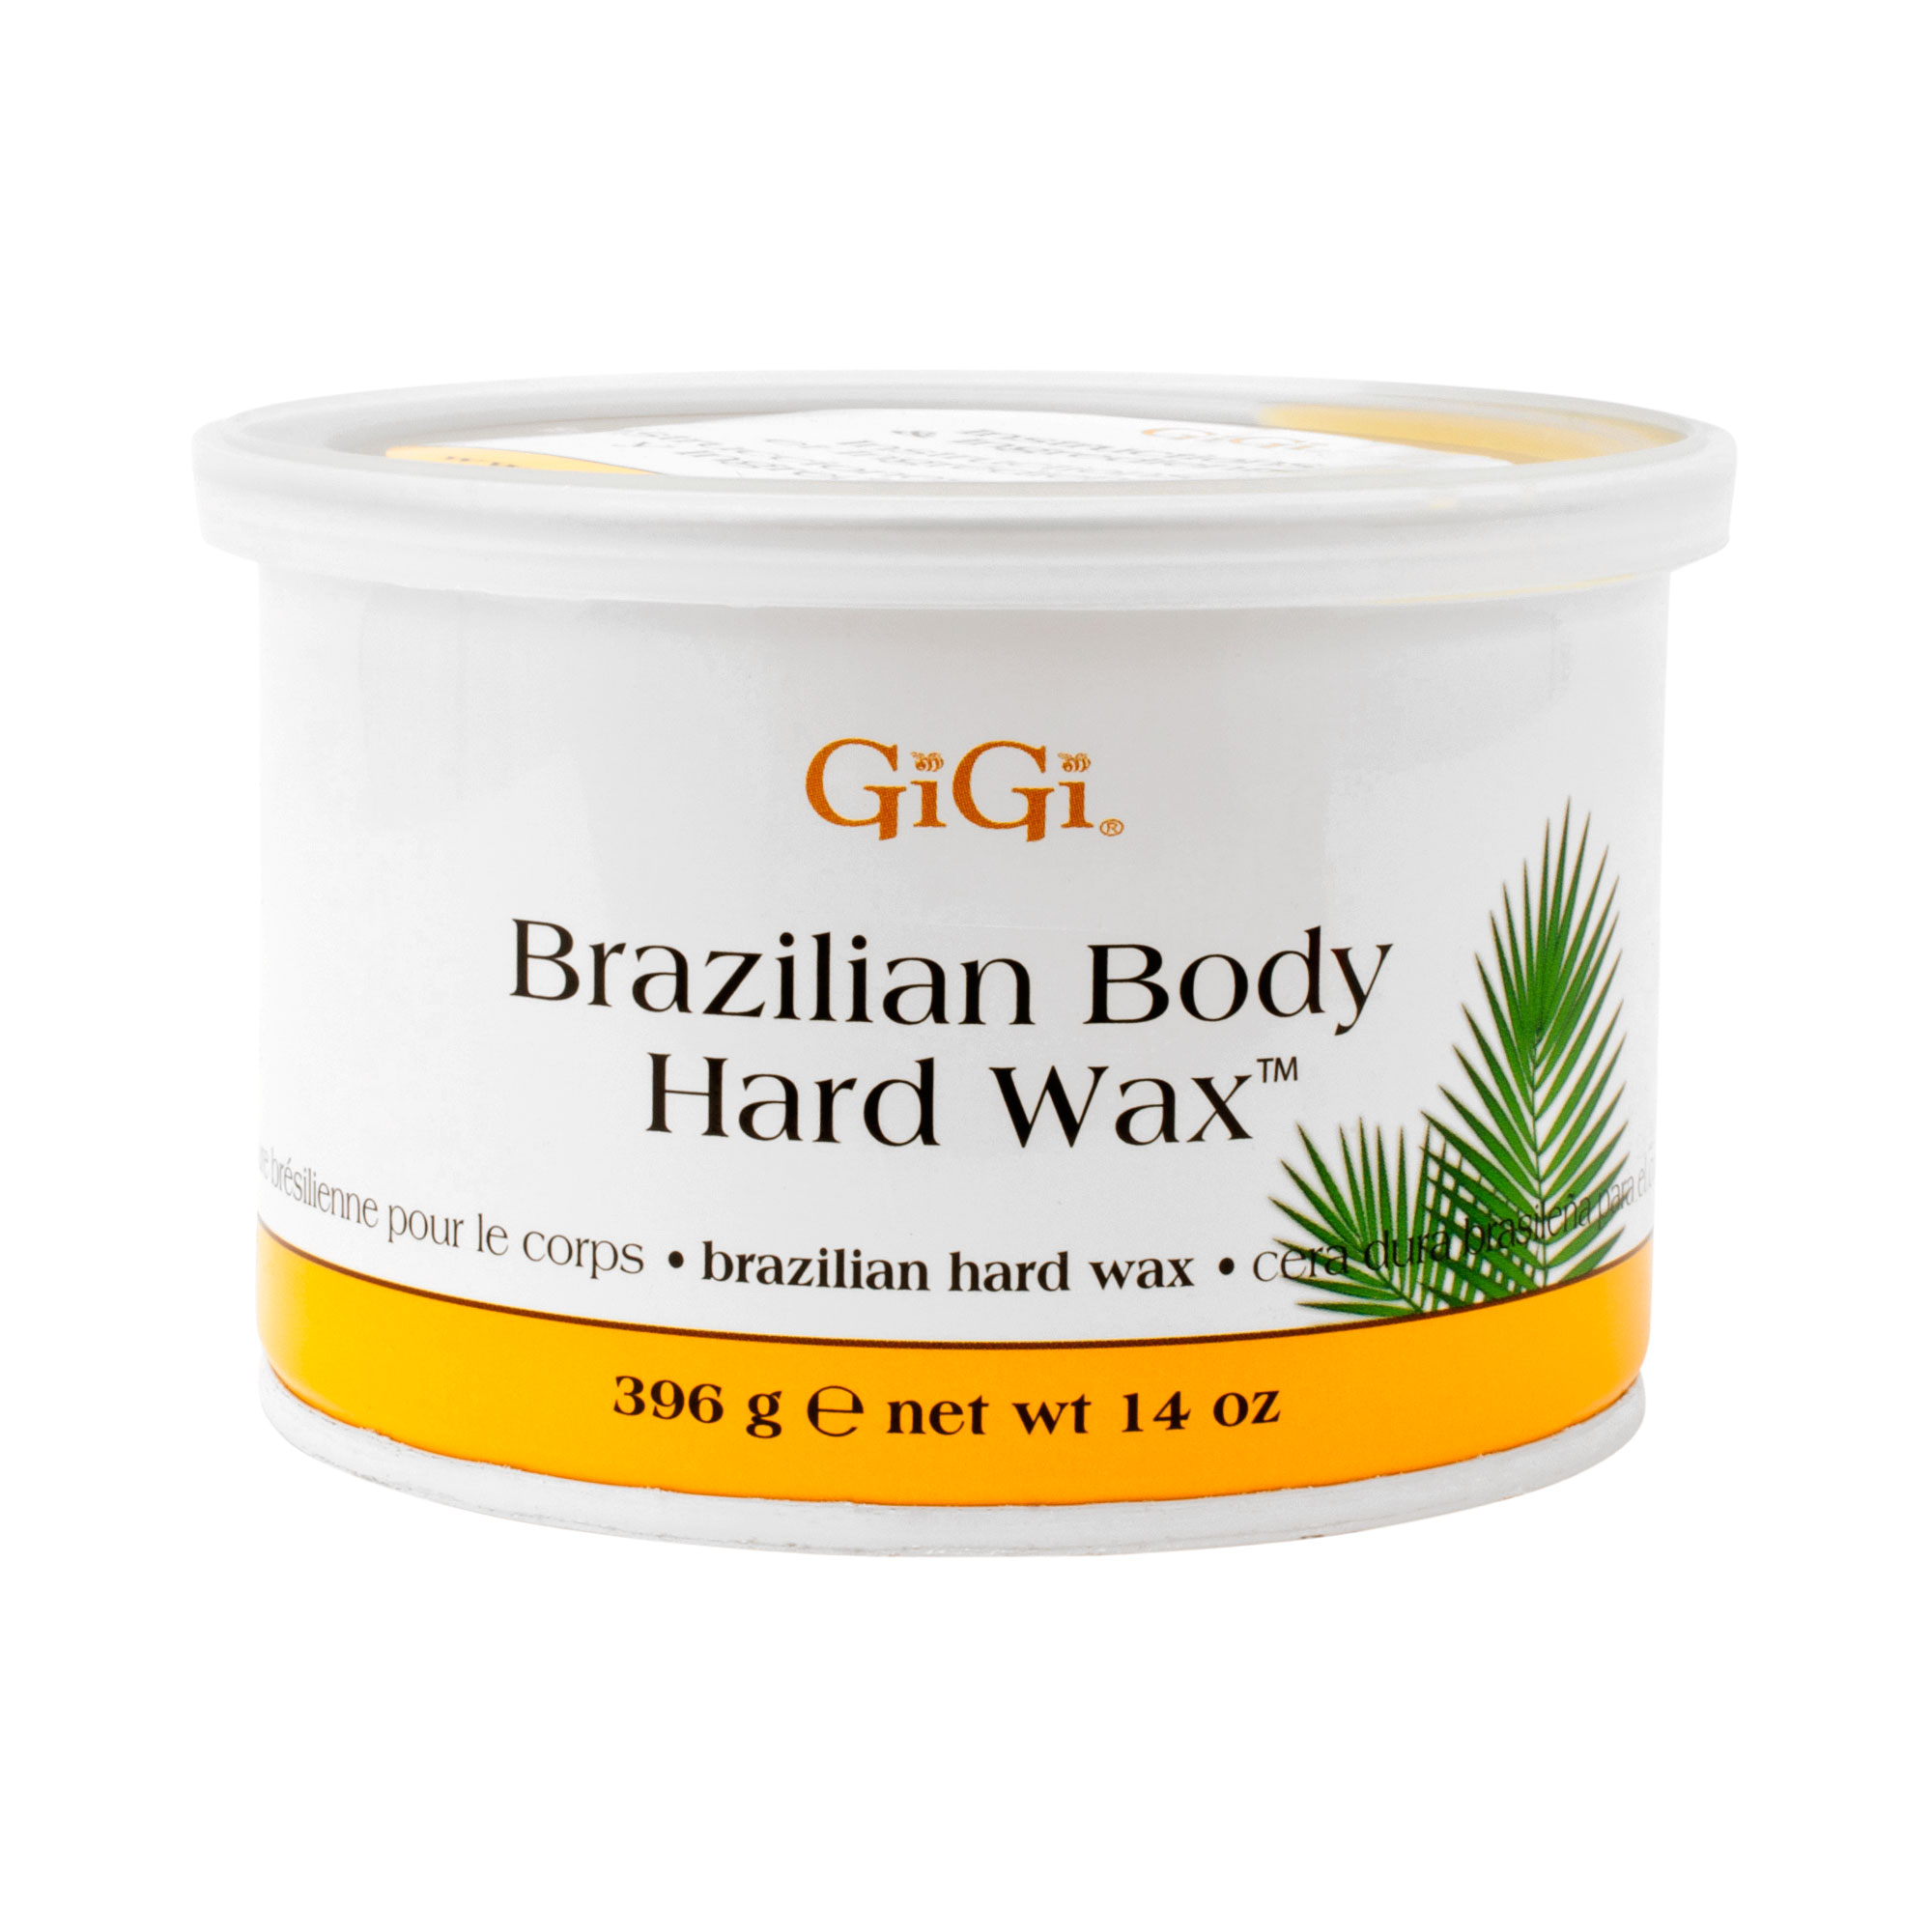 GiGi 14oz BRian Body Hard Wax Hair Removal Depilatory, 0899